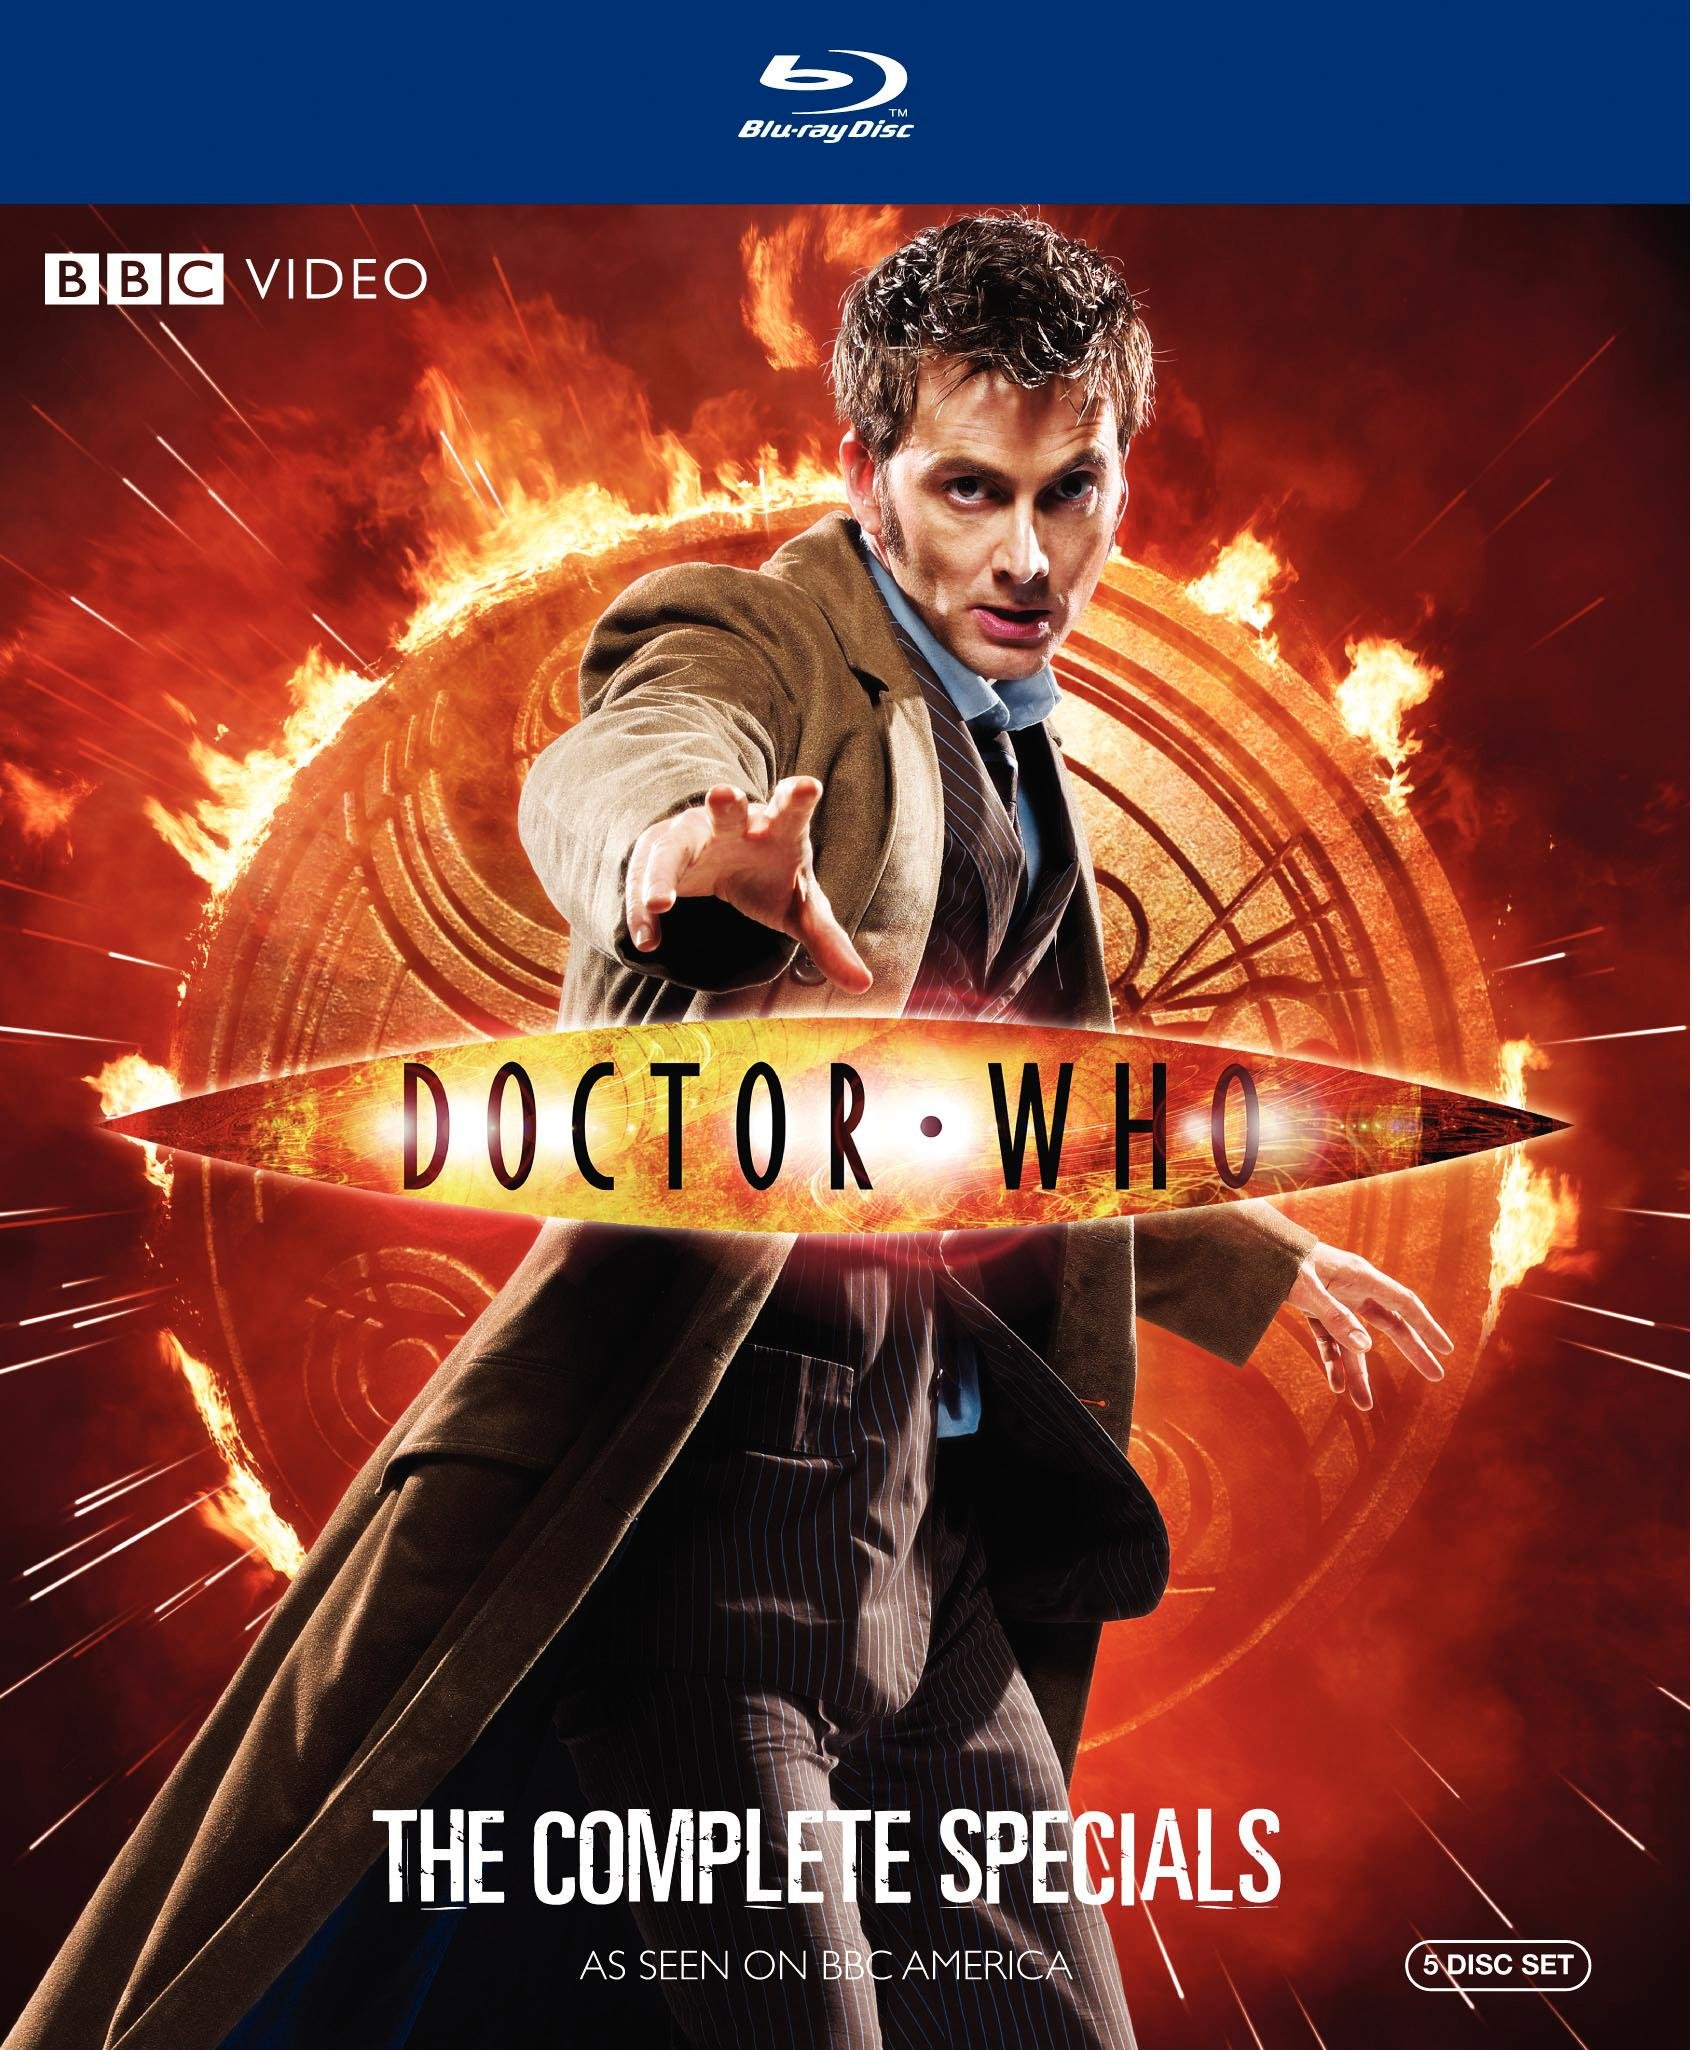 Doctor Who: The Complete Specials (The Next Doctor / Planet of the Dead / The Waters of Mars / The End of Time Parts 1 and 2) [Blu-ray] by Warner Manufacturing